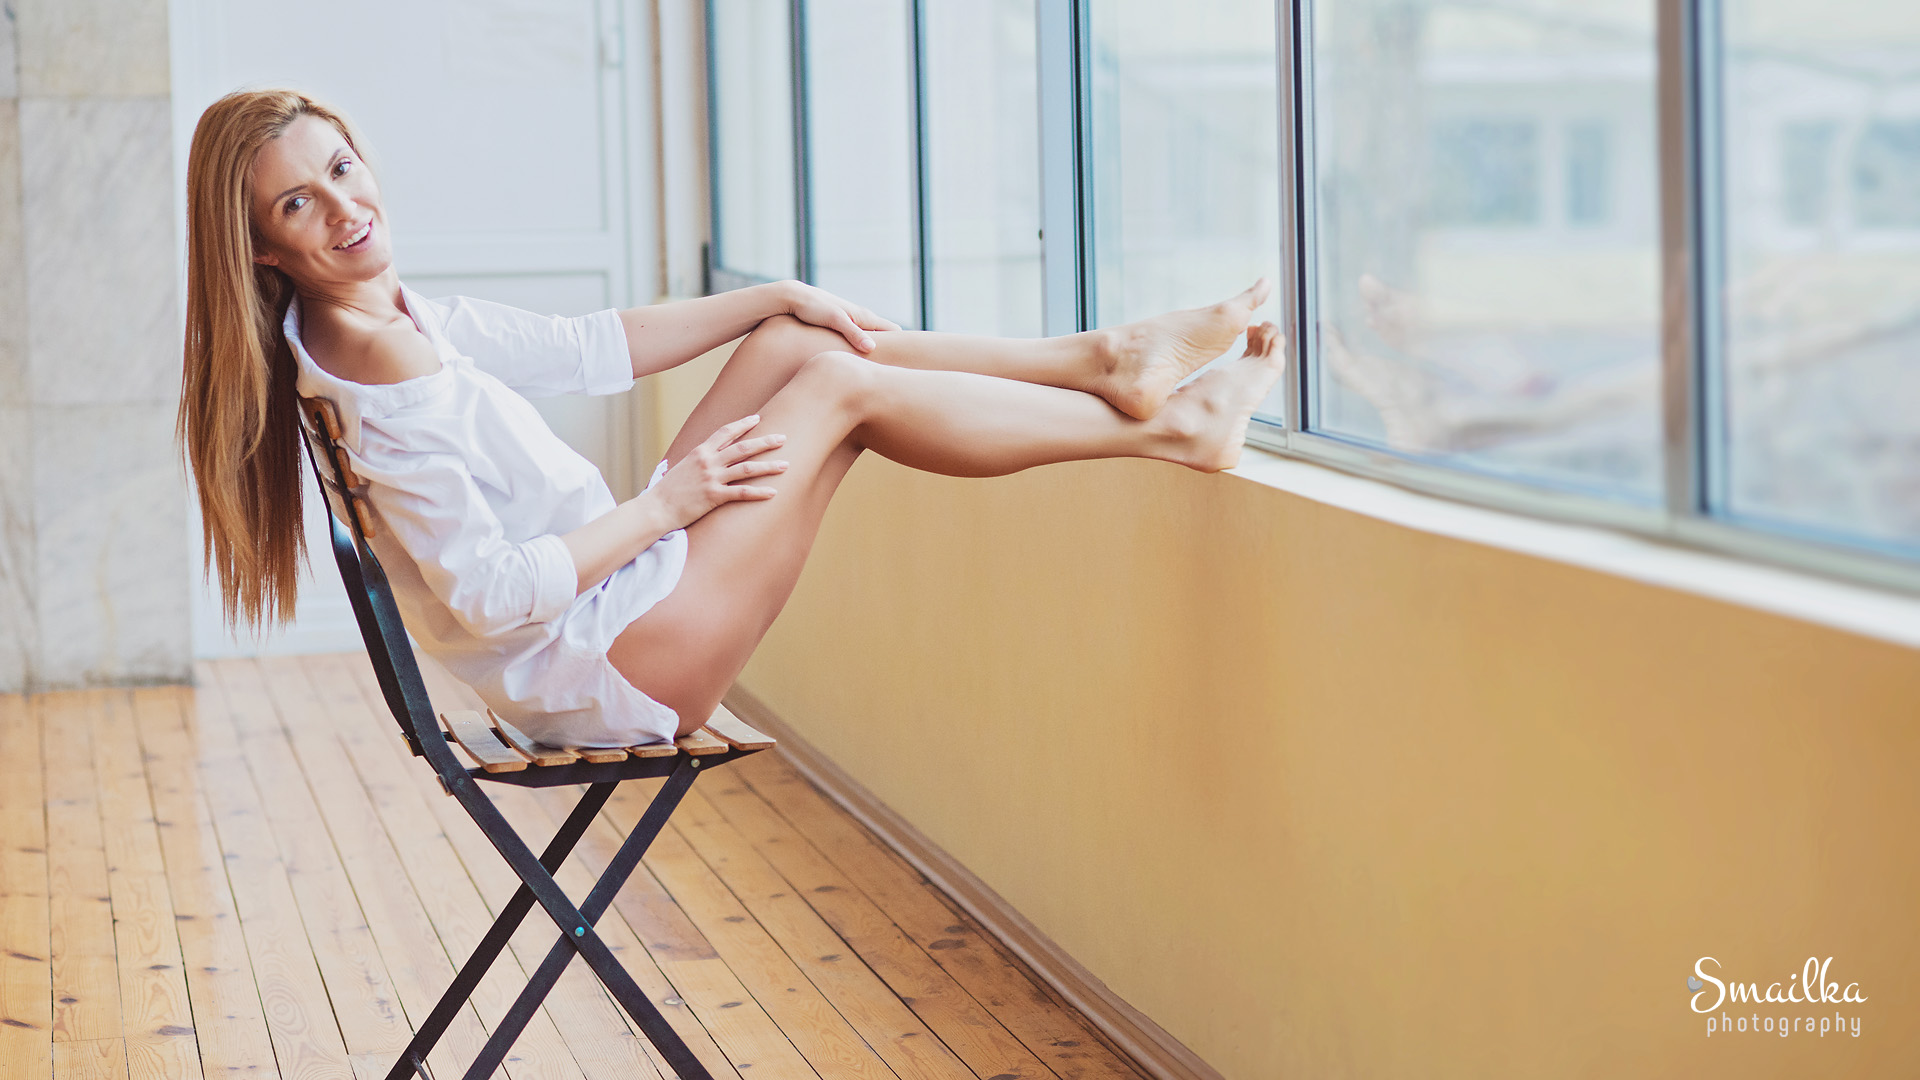 Ballerina photo Dobrich Yanica smiling on a chair